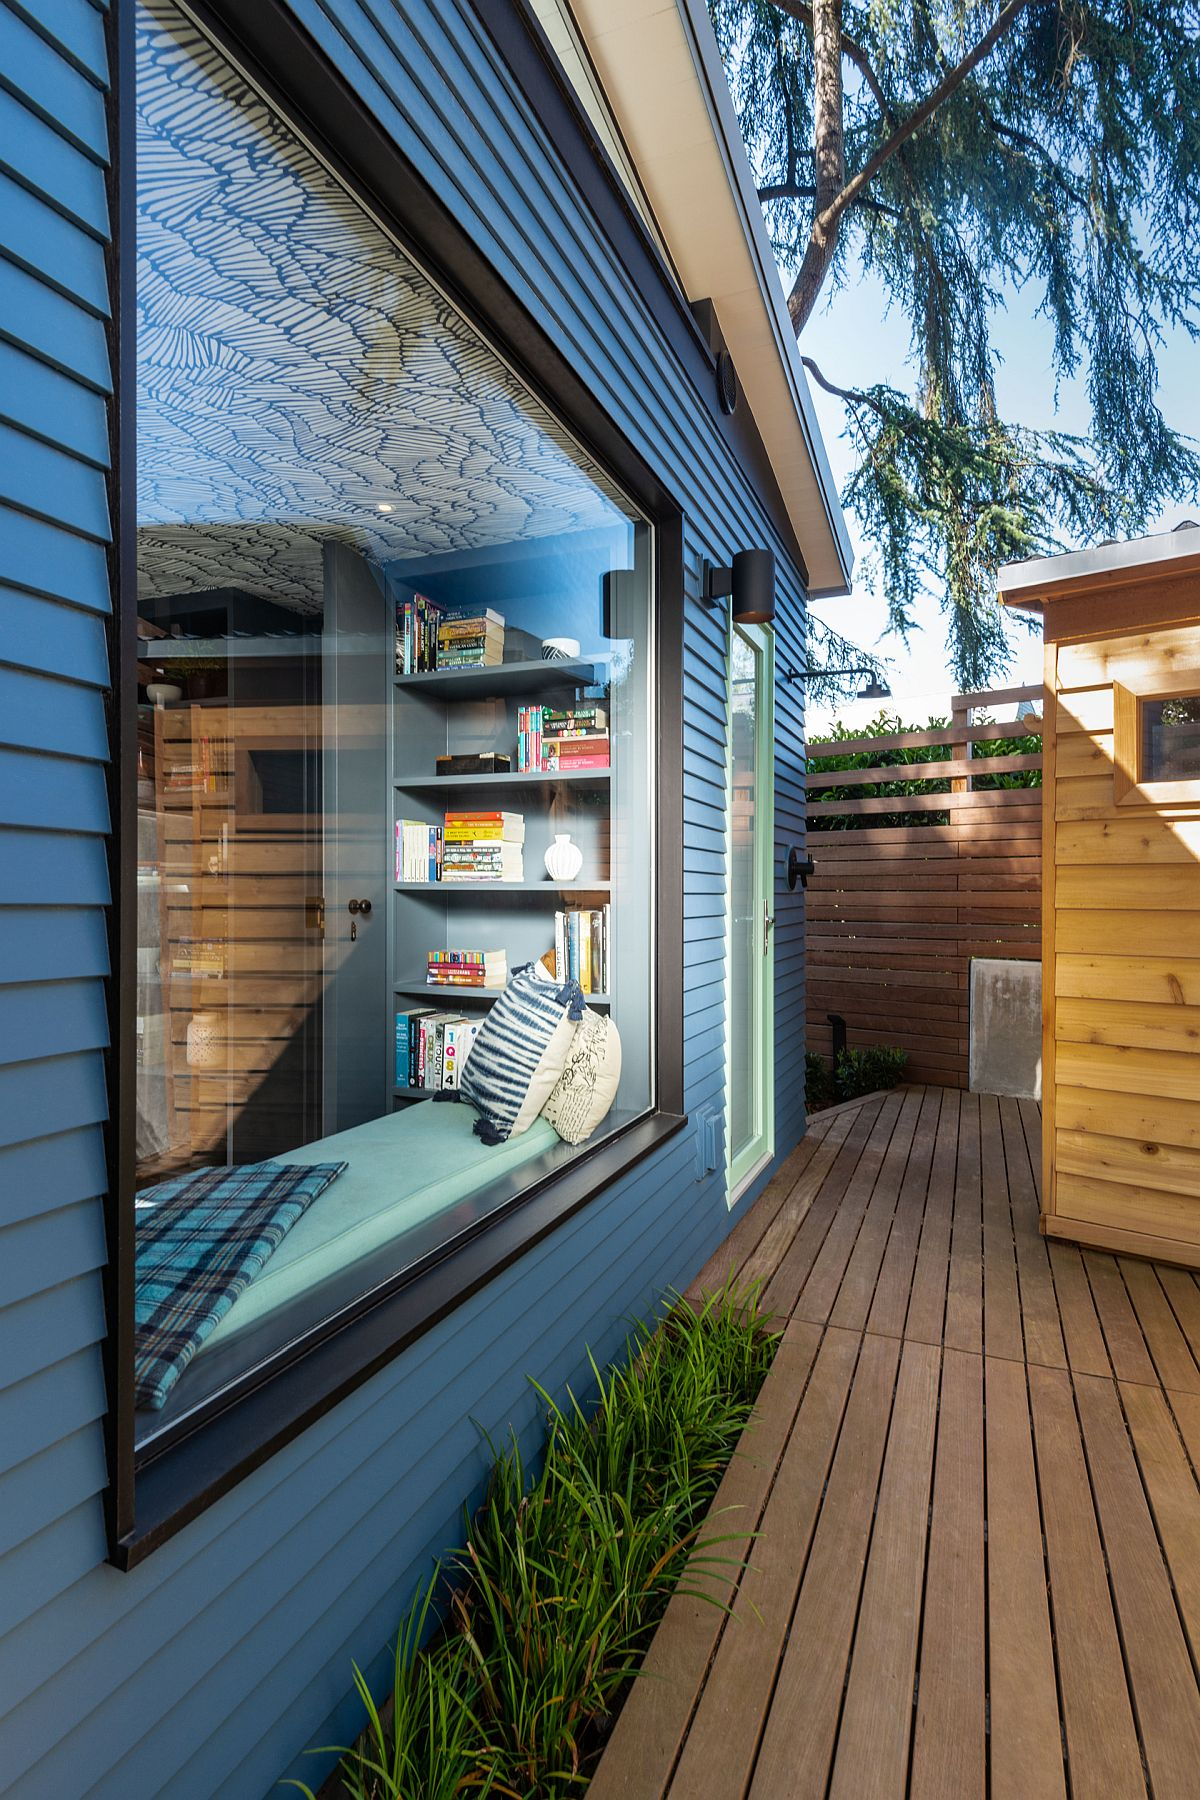 Window seat offers a great view of the deck outside